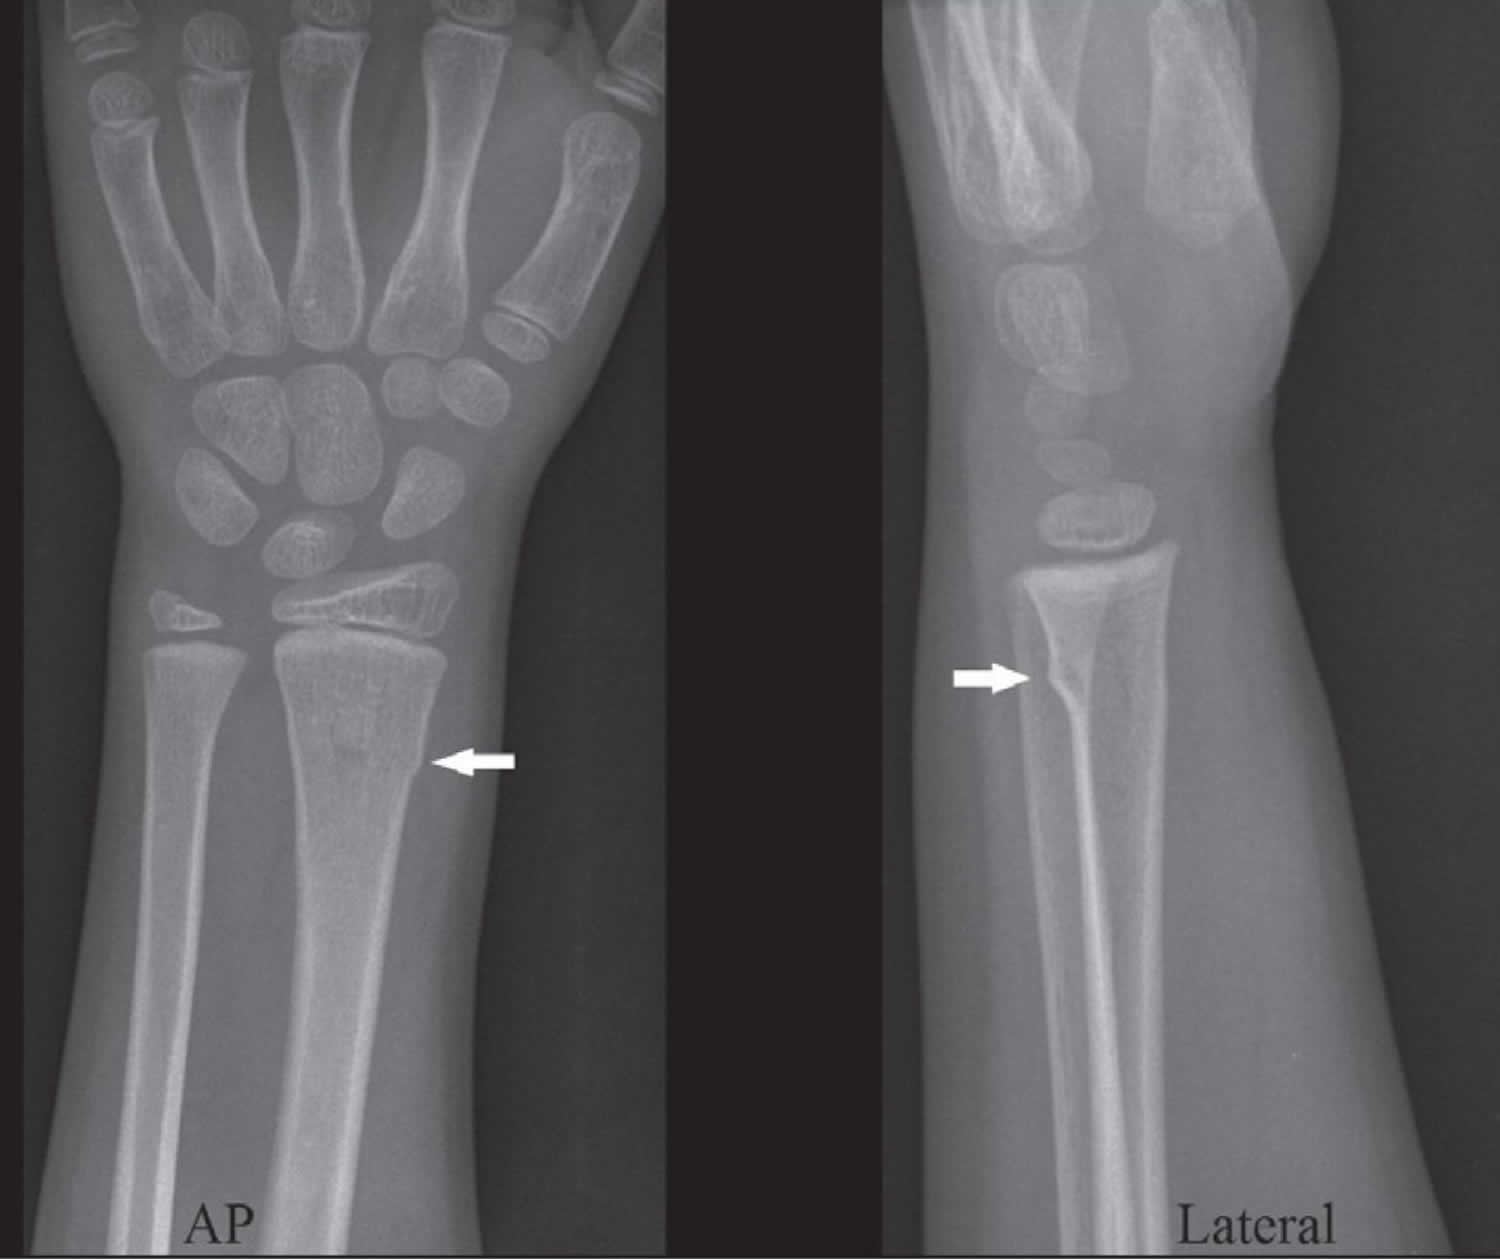 Buckle fracture of the distal radius